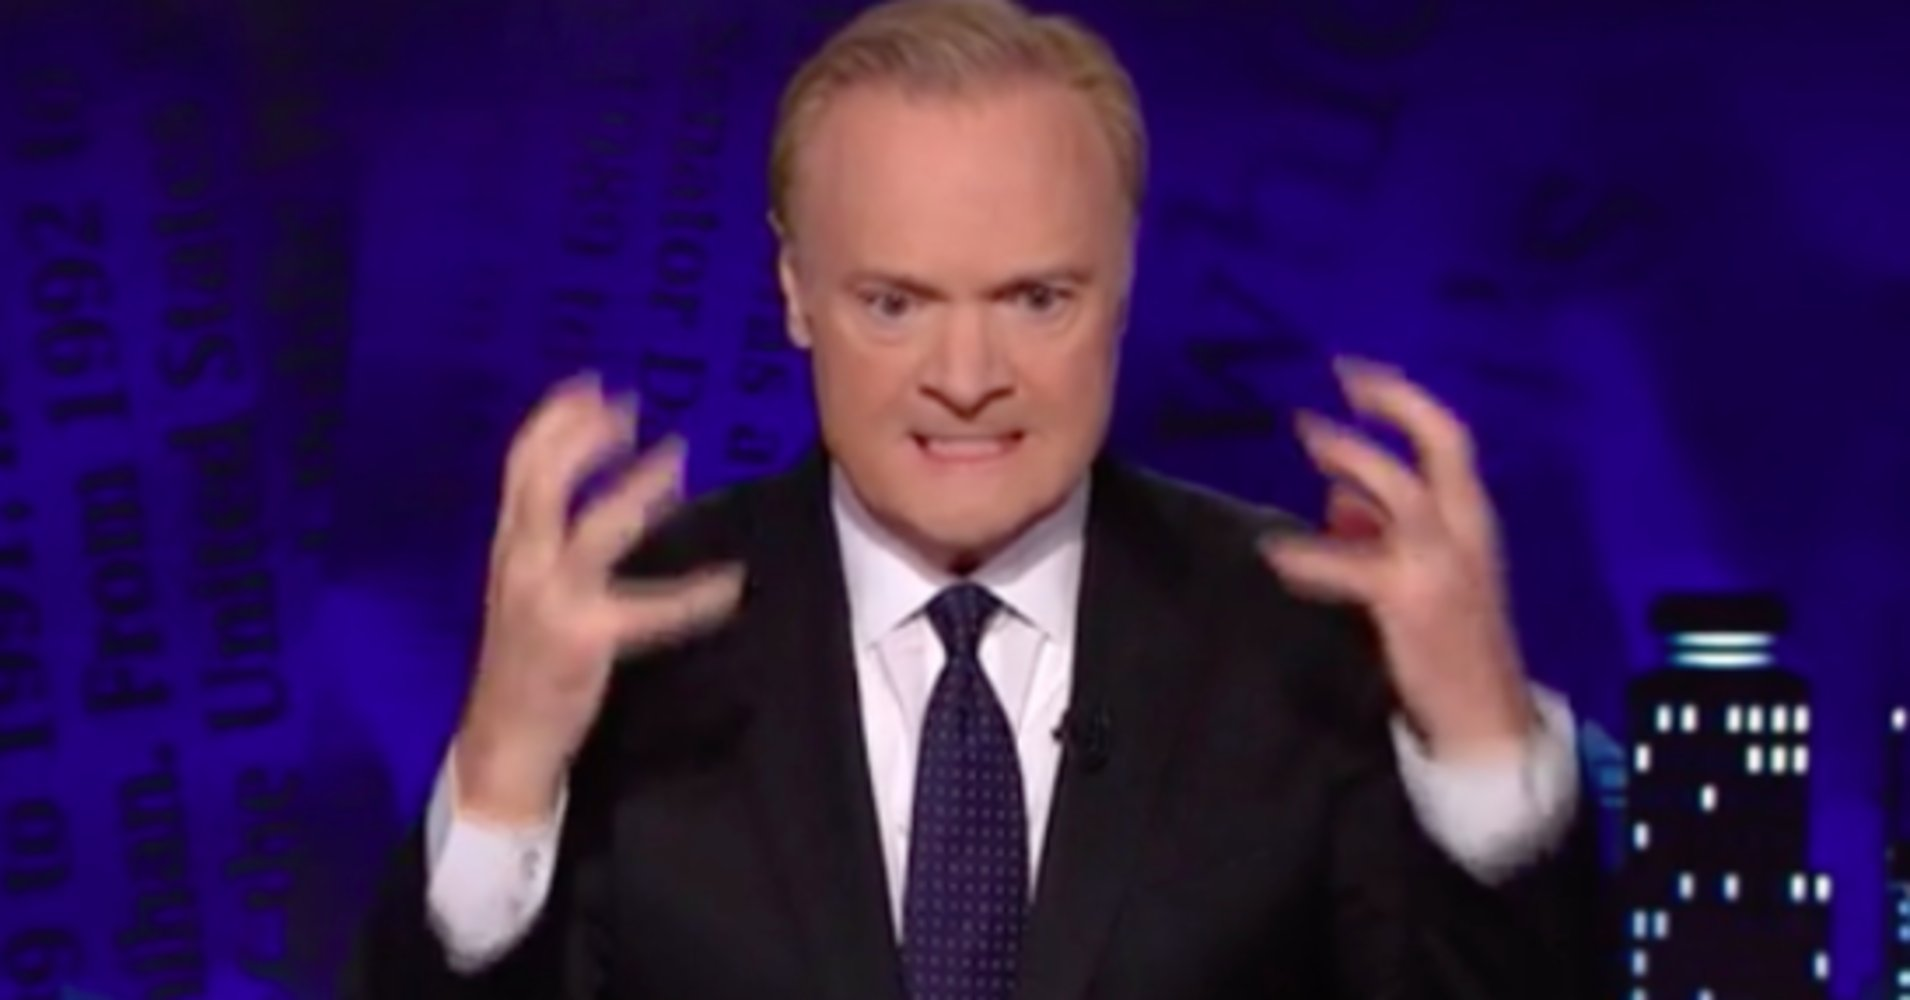 Lawrence O'Donnell lost his mind over a malfunctioning earpiece https://t.co/edjXMH6clj https://t.co/3KSmgH2HnZ